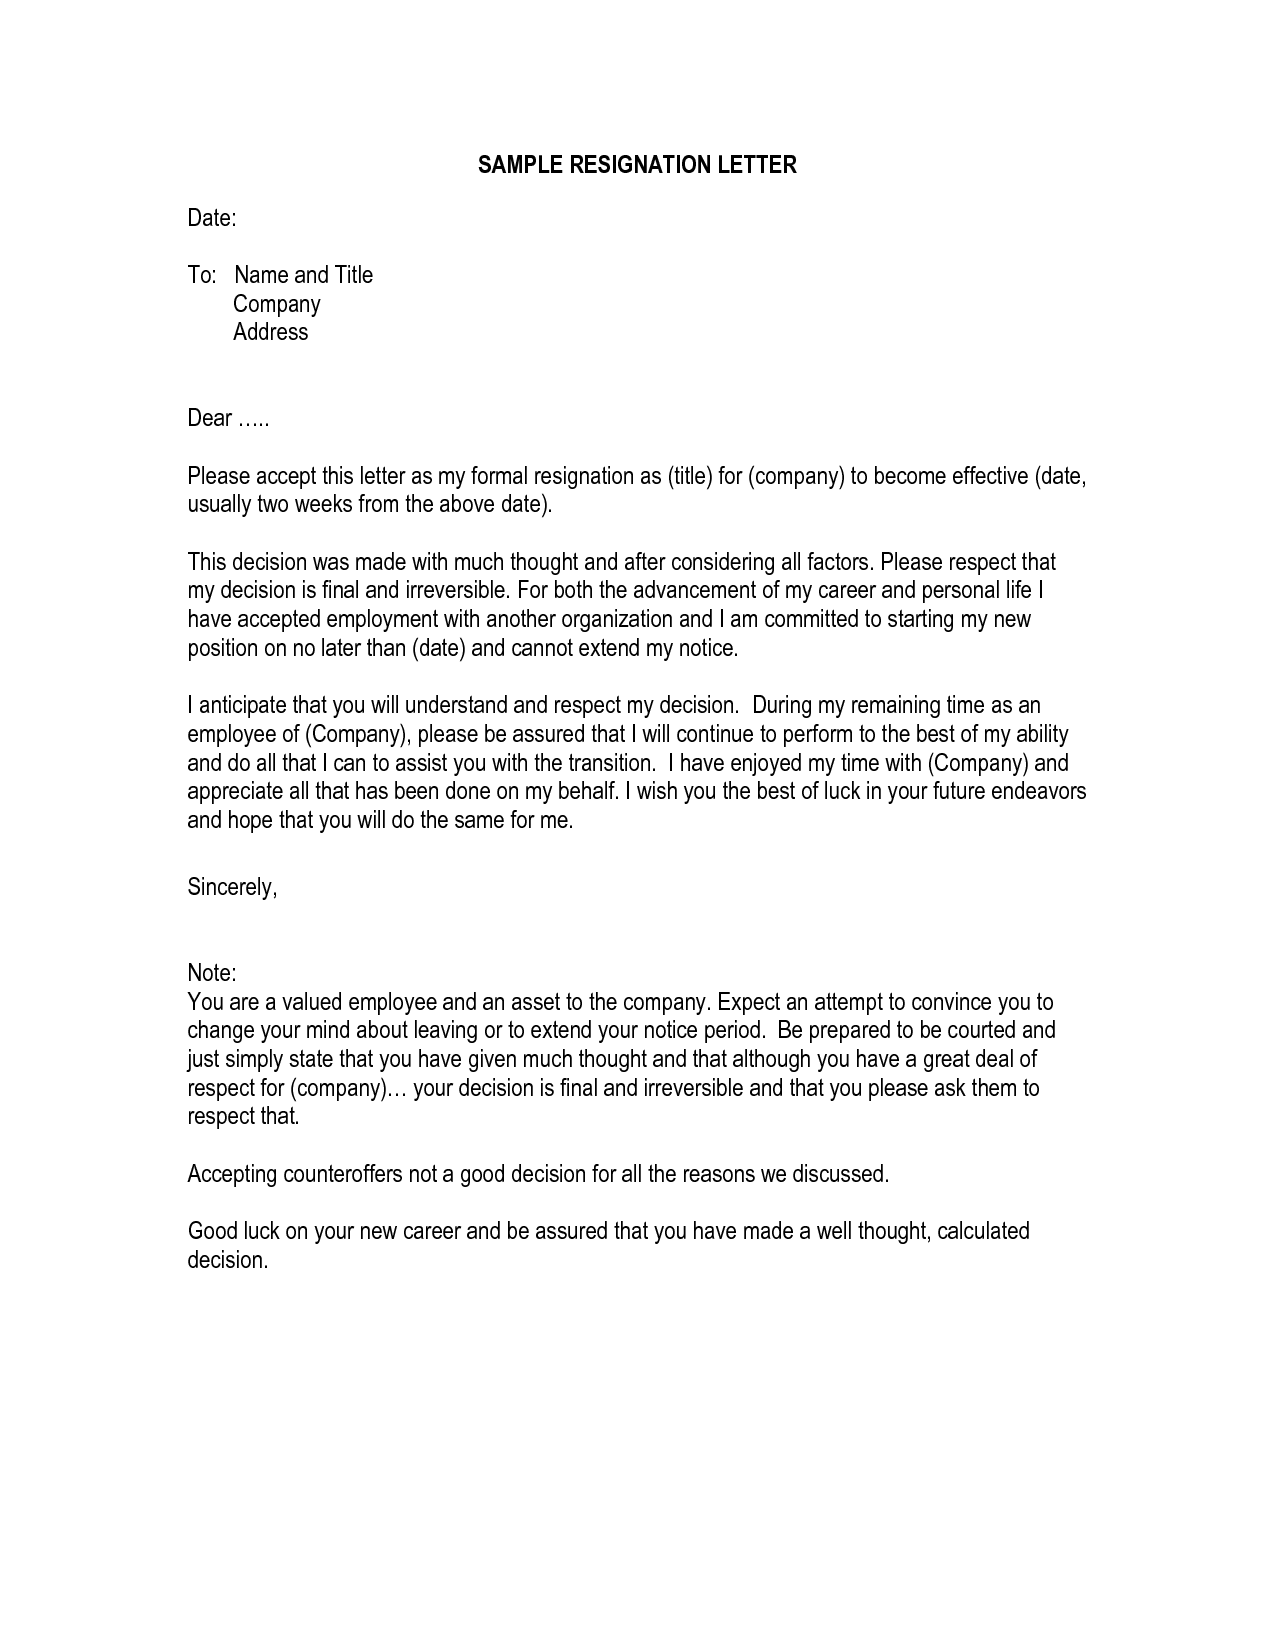 Type Resume Business Letter Sample Kern How Resignation Layout